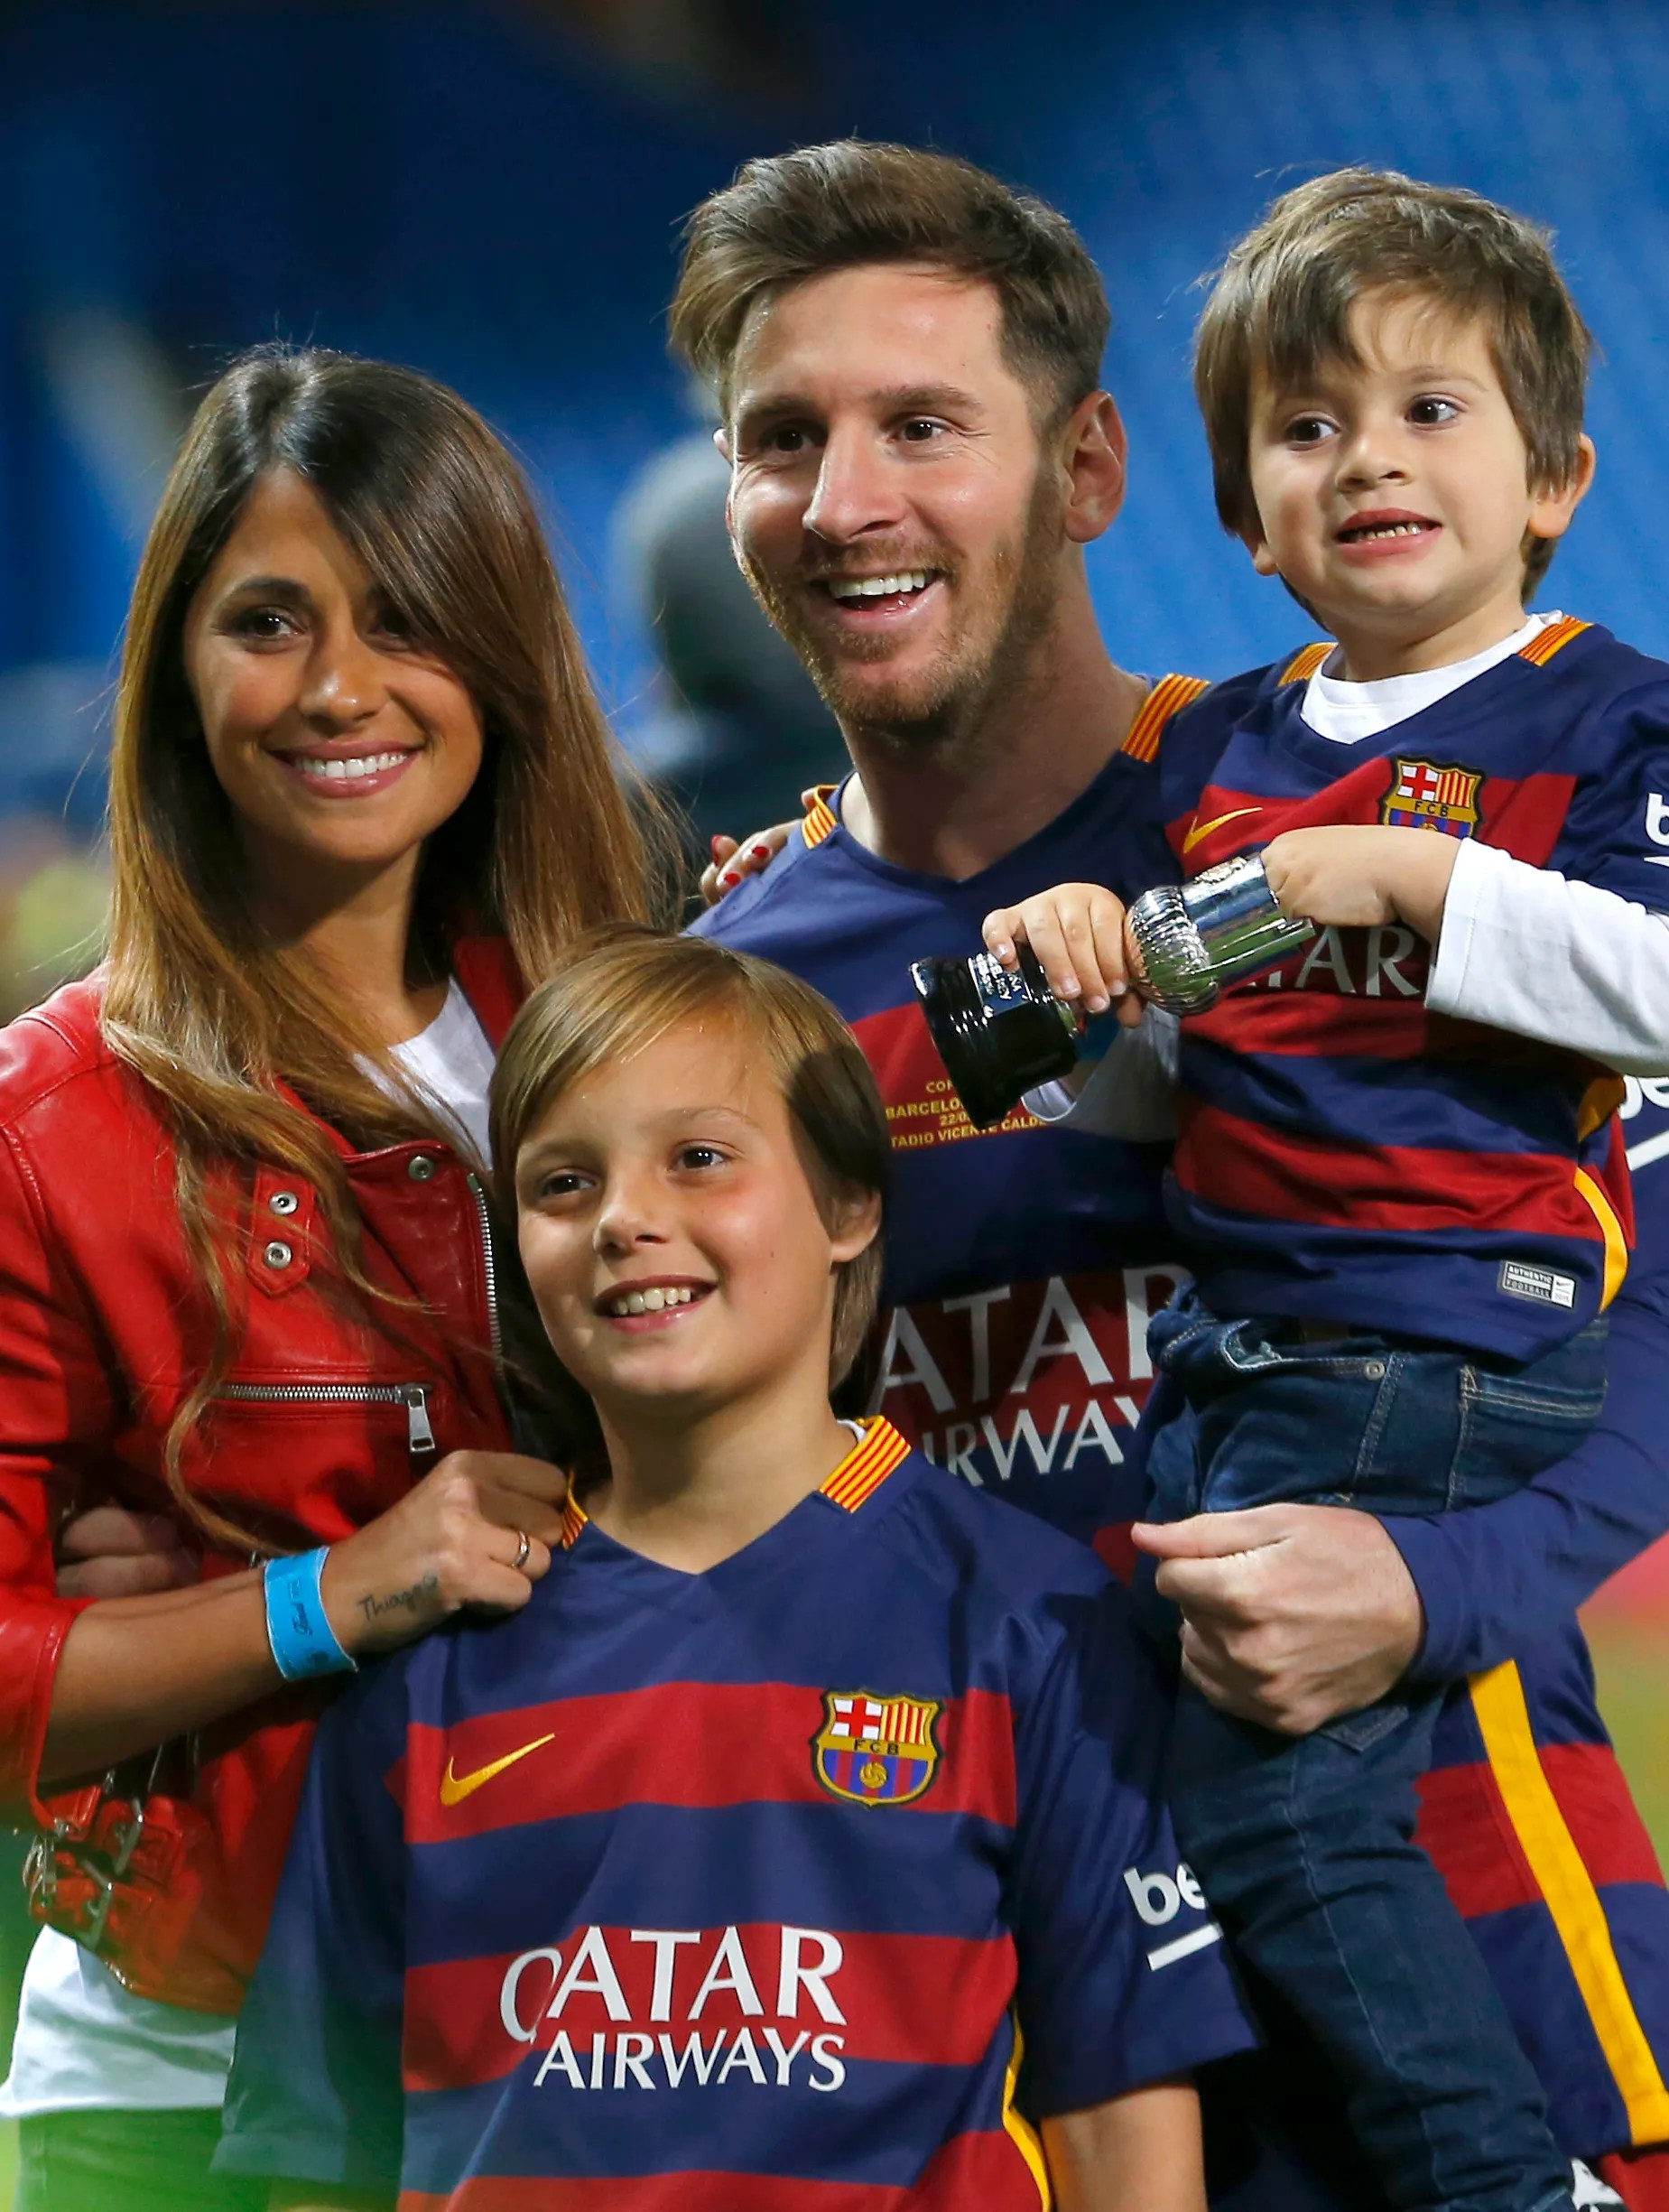 Lionel Messi Childhood : lionel, messi, childhood, Not-so-shy, Messi, Tying, Childhood, Sweetheart, Seattle, Times